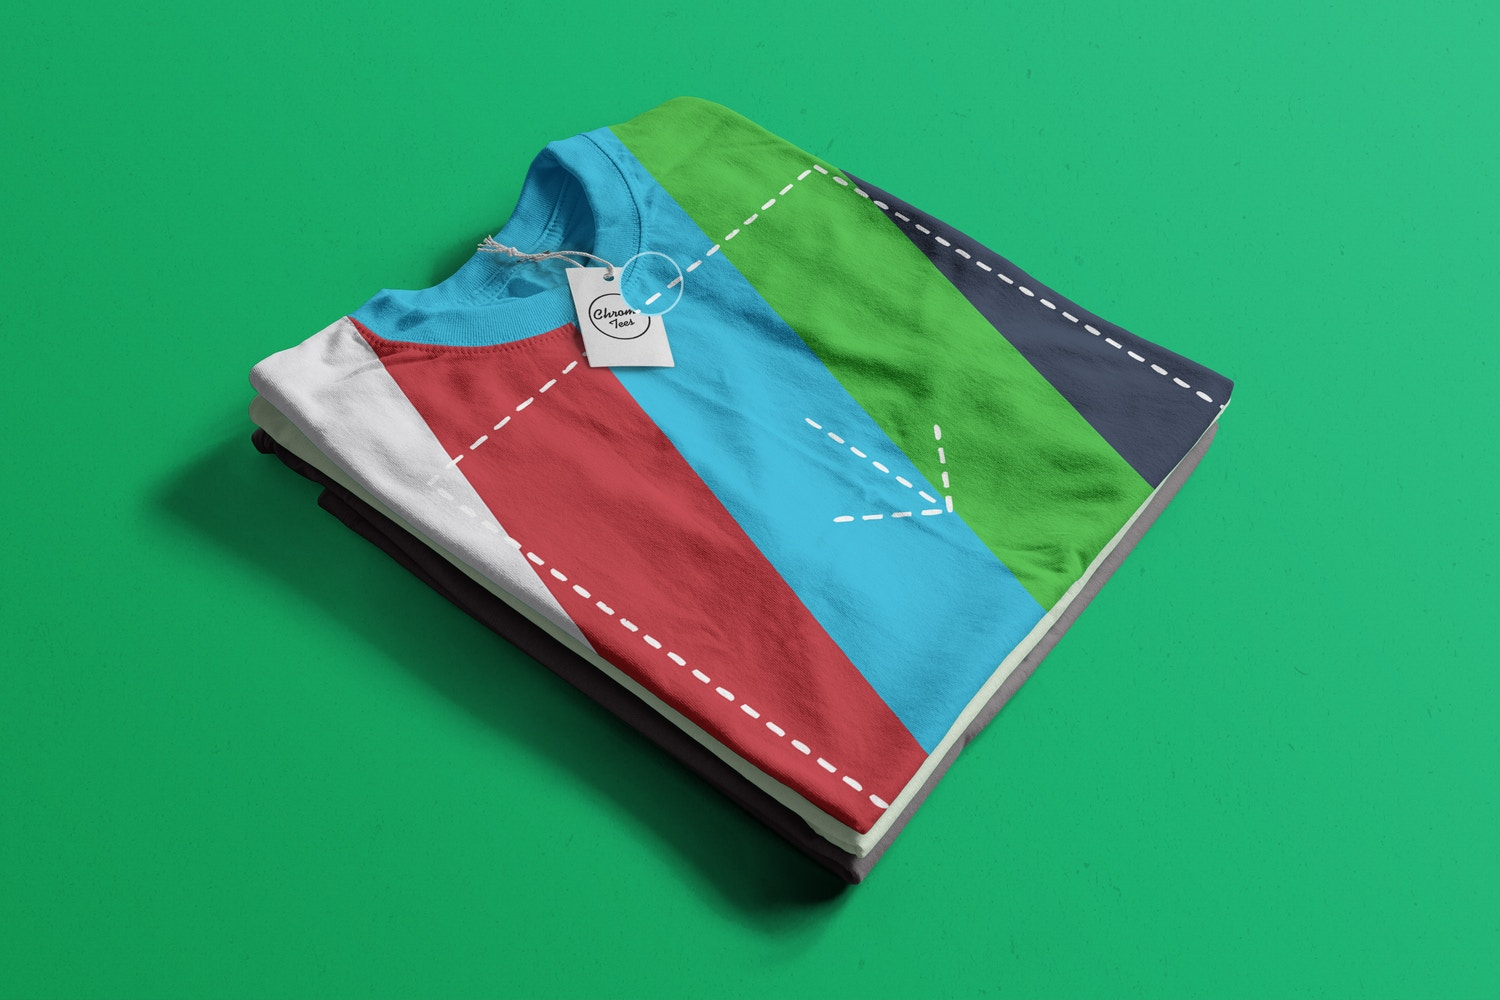 Stack of Folded T-Shirts Mockup 04 (2) by Antonio Padilla on Original Mockups